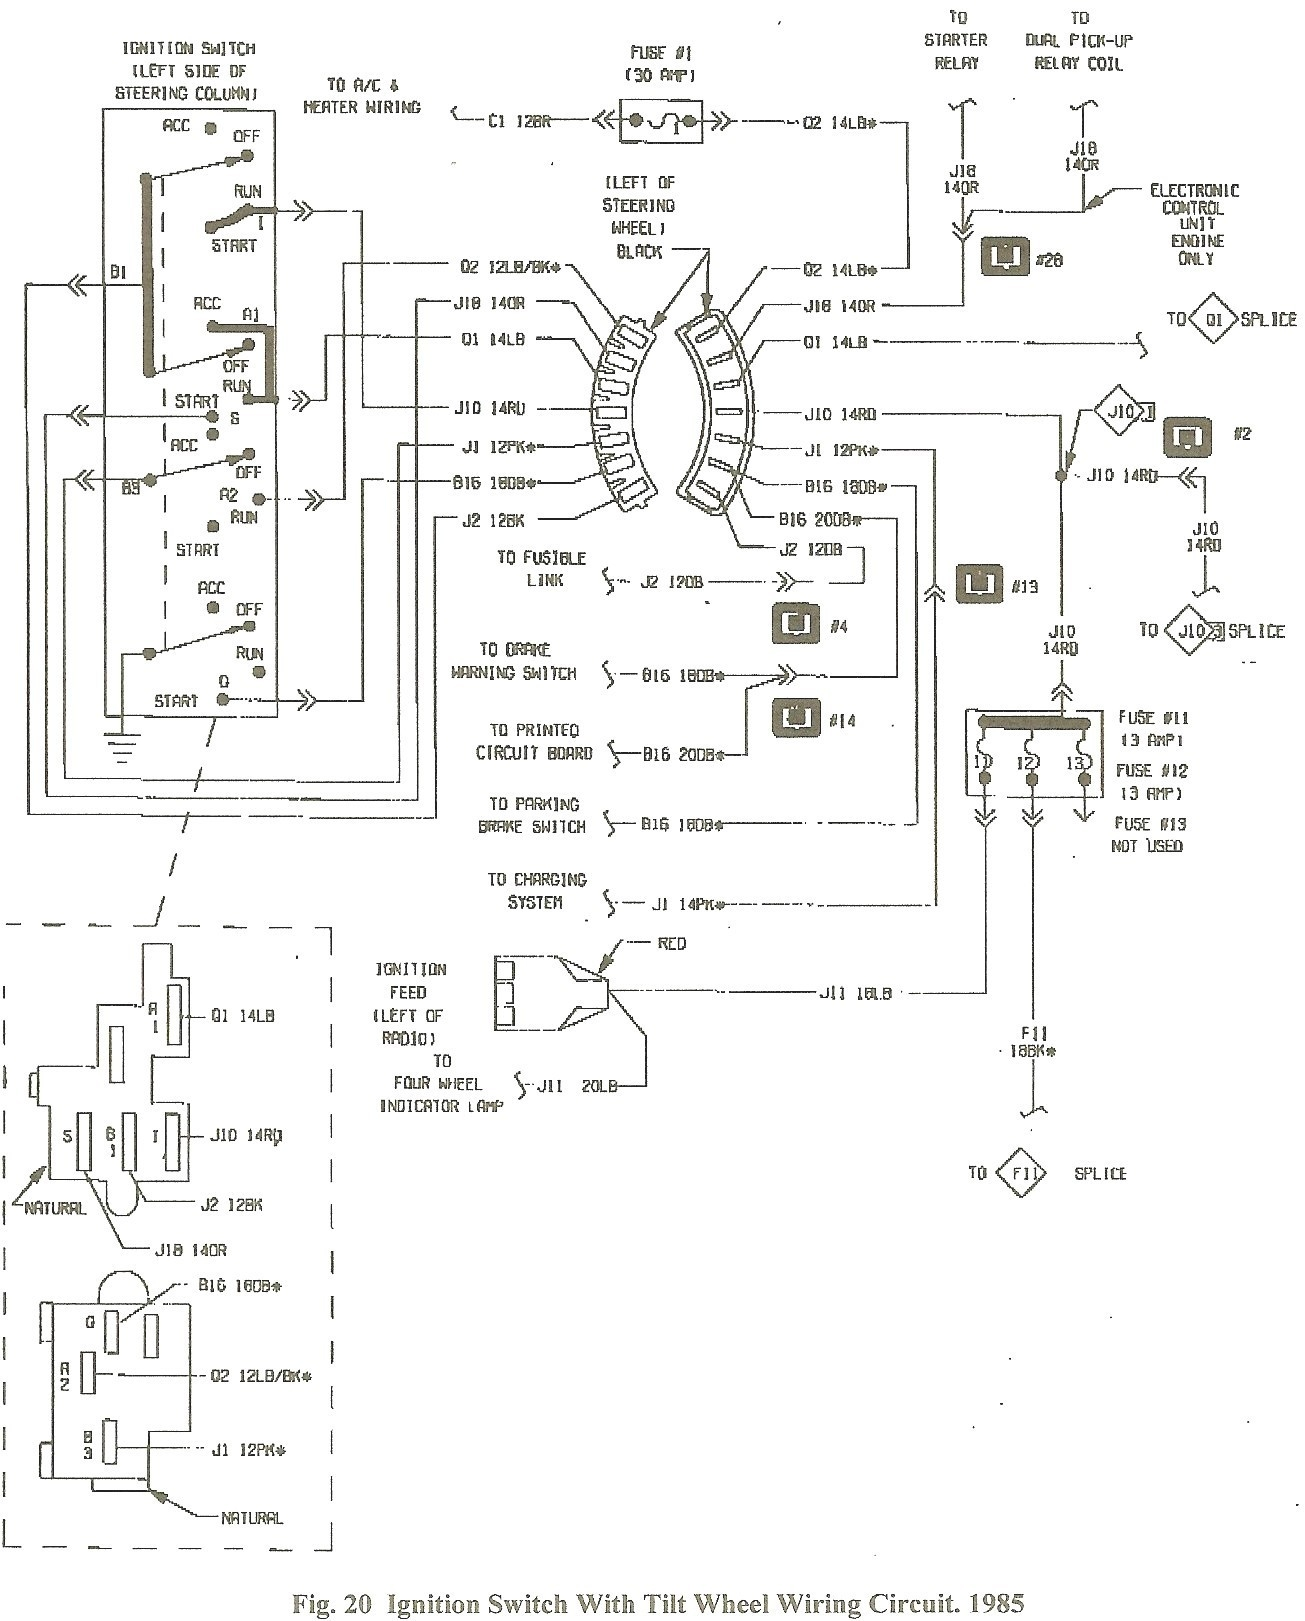 1994 Dodge Ram Pcm Wiring Diagram Full Hd Version Wiring Diagram Fault Tree Analysis Emballages Sous Vide Fr